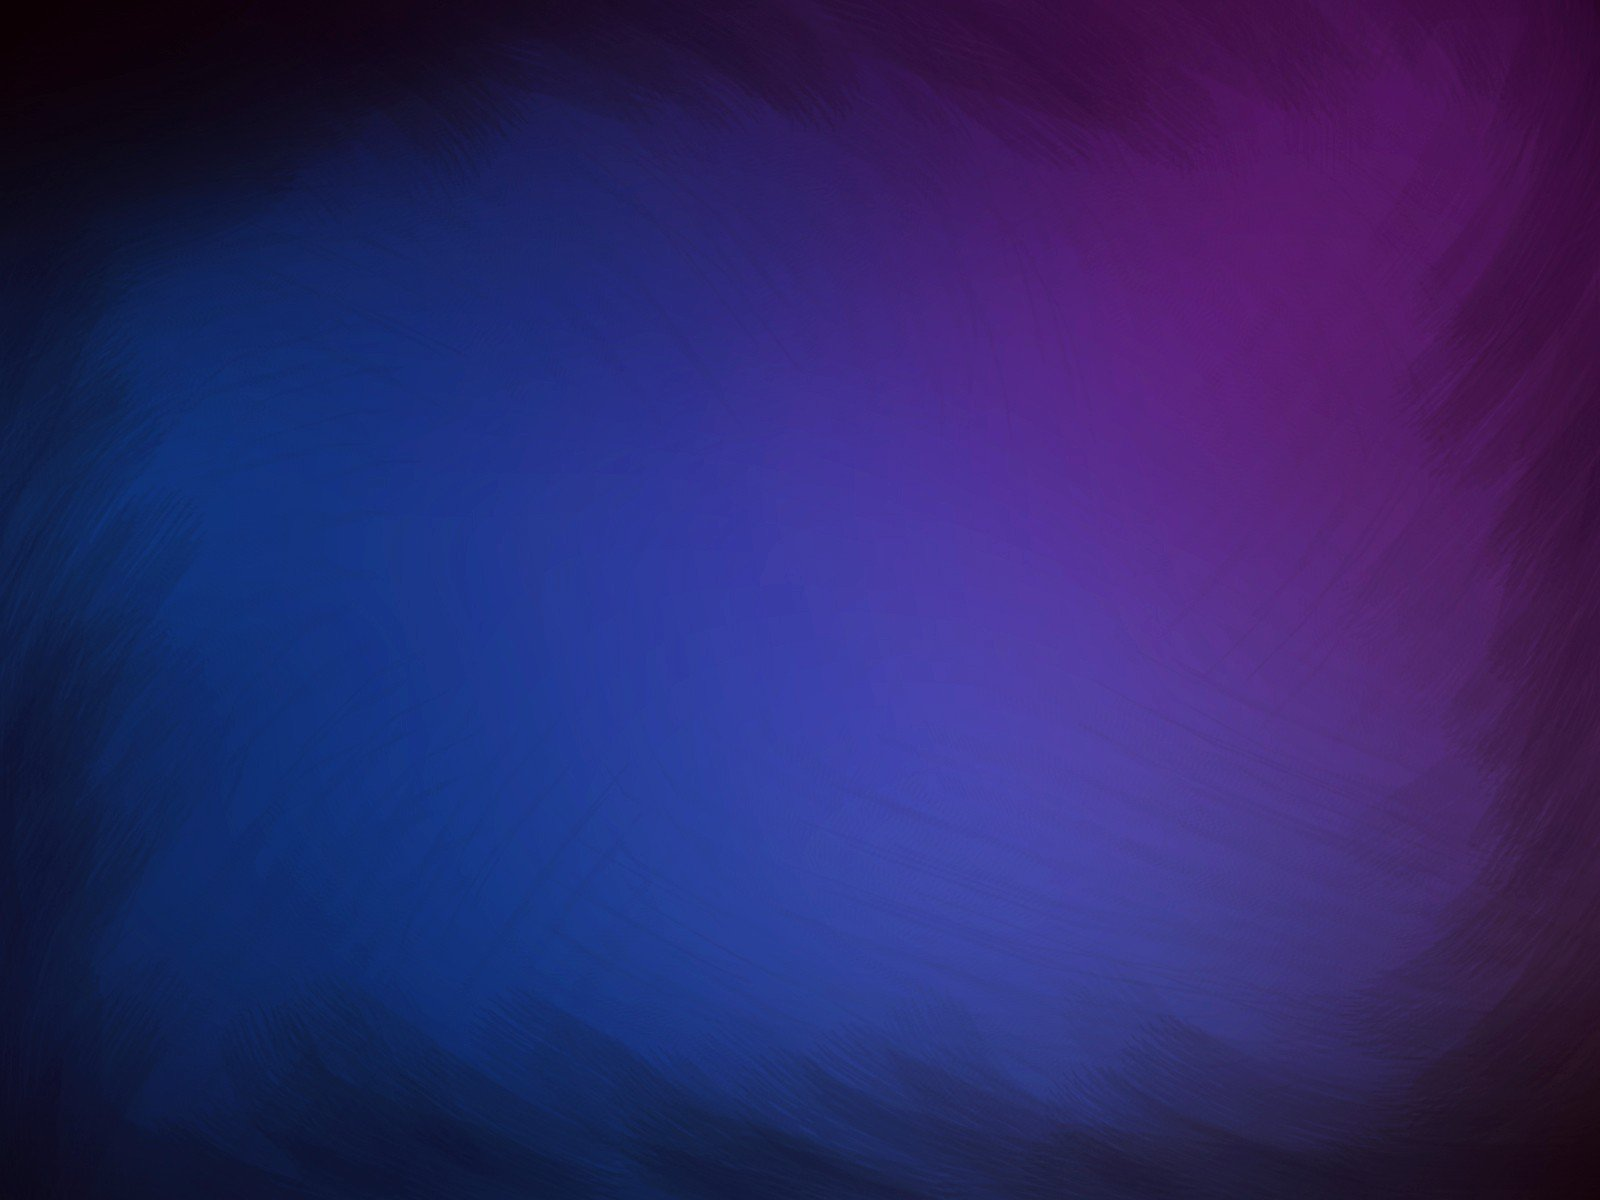 Image Blue purple gra nt wallpaper 4